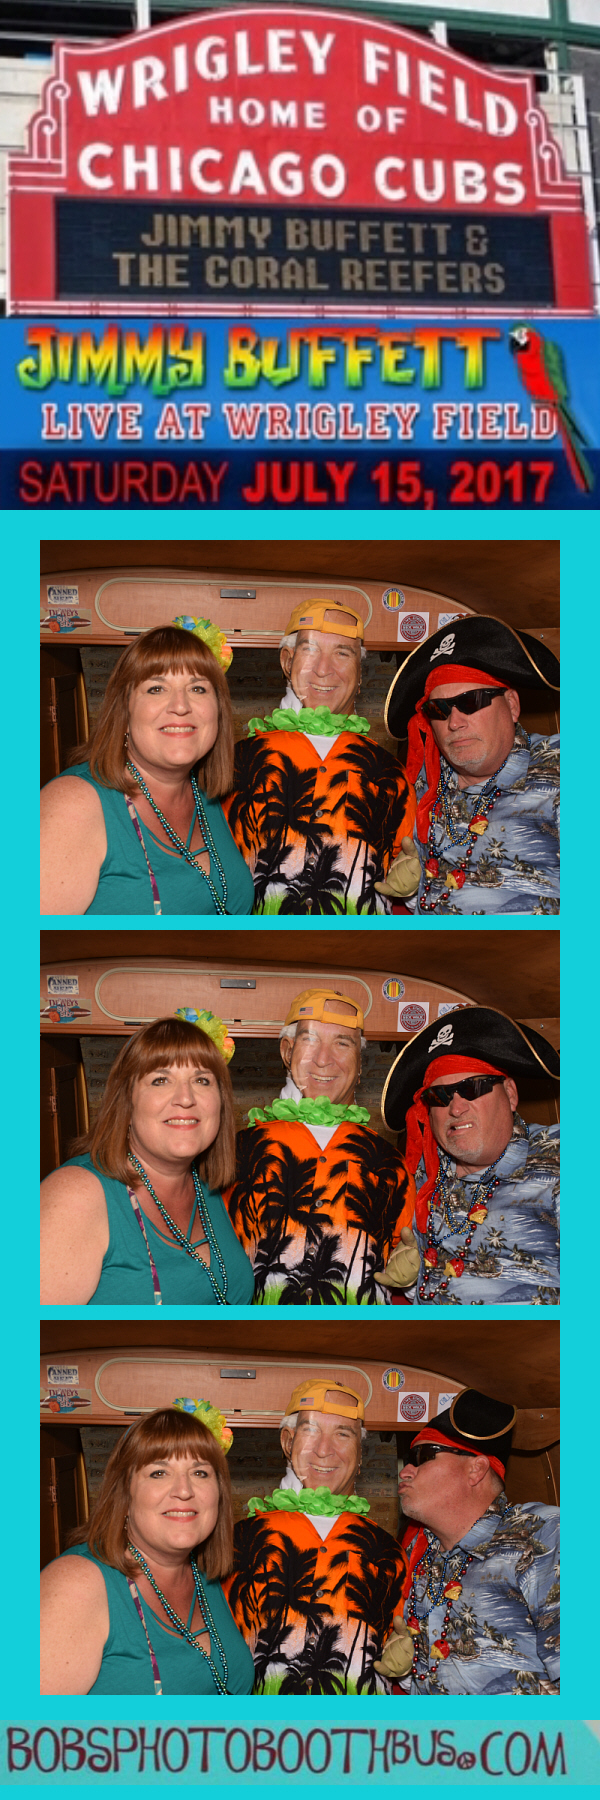 Jimmy Buffett final photo strip graphic_45.jpg